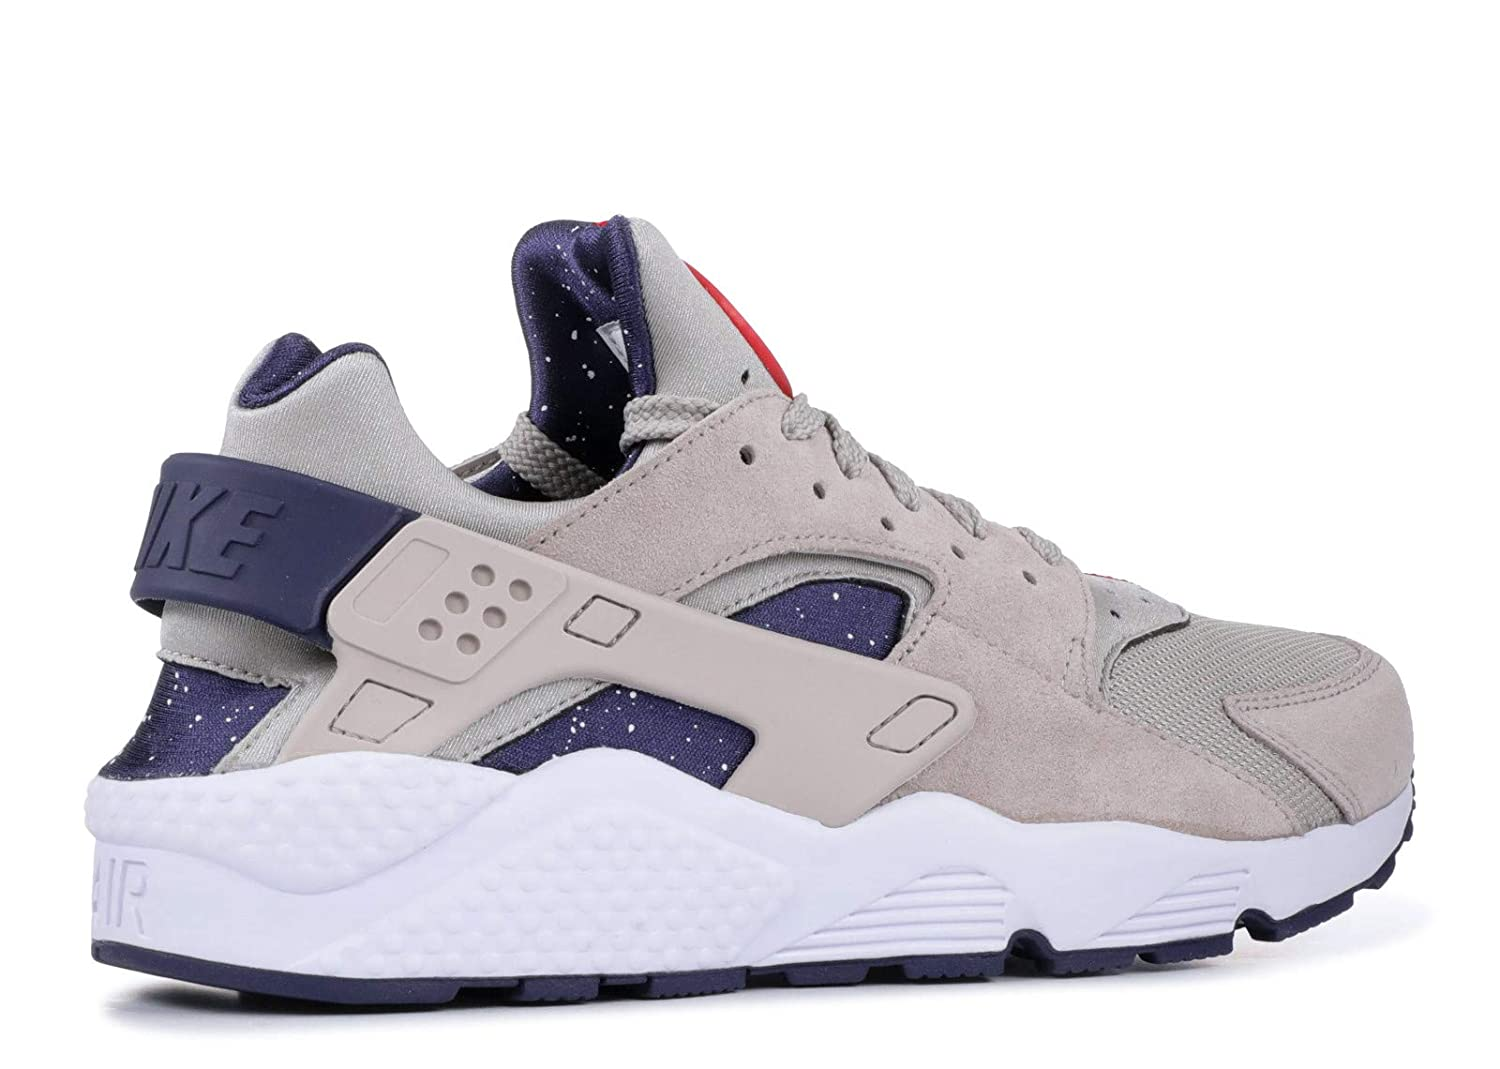 Nike AIR Huarache Run A - - - AQ0553-200 182339